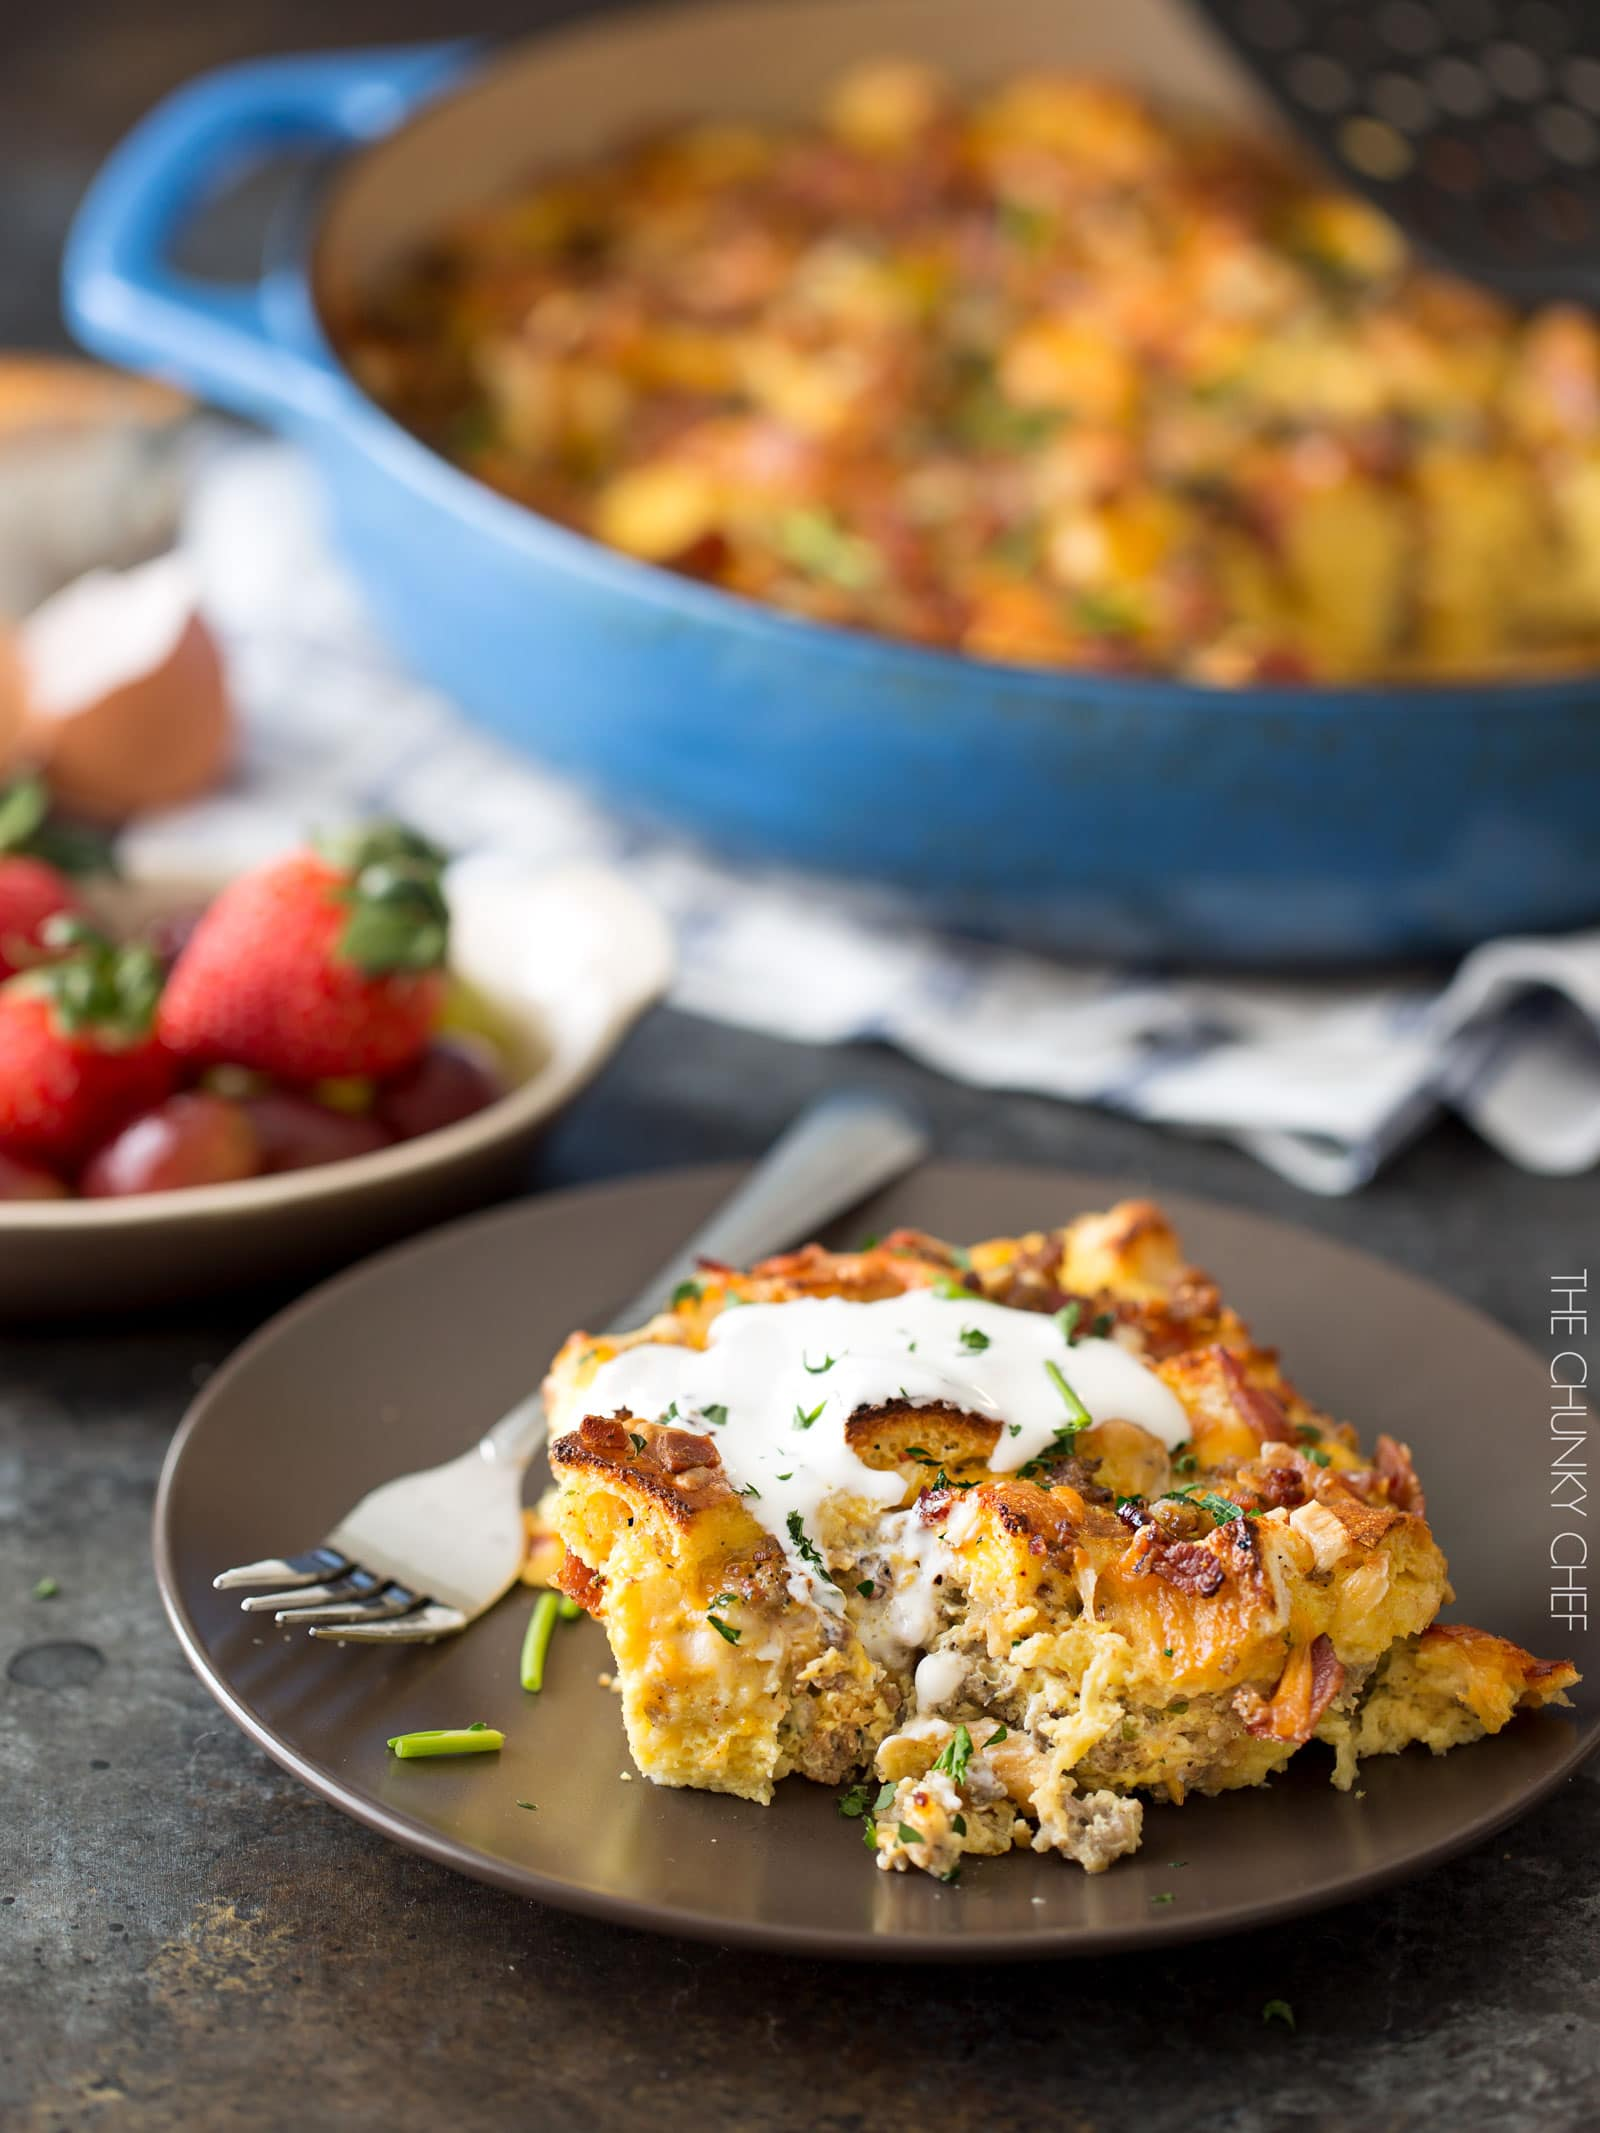 Overnight Breakfast Strata This Dish Is Made The Night Before Refrigerated